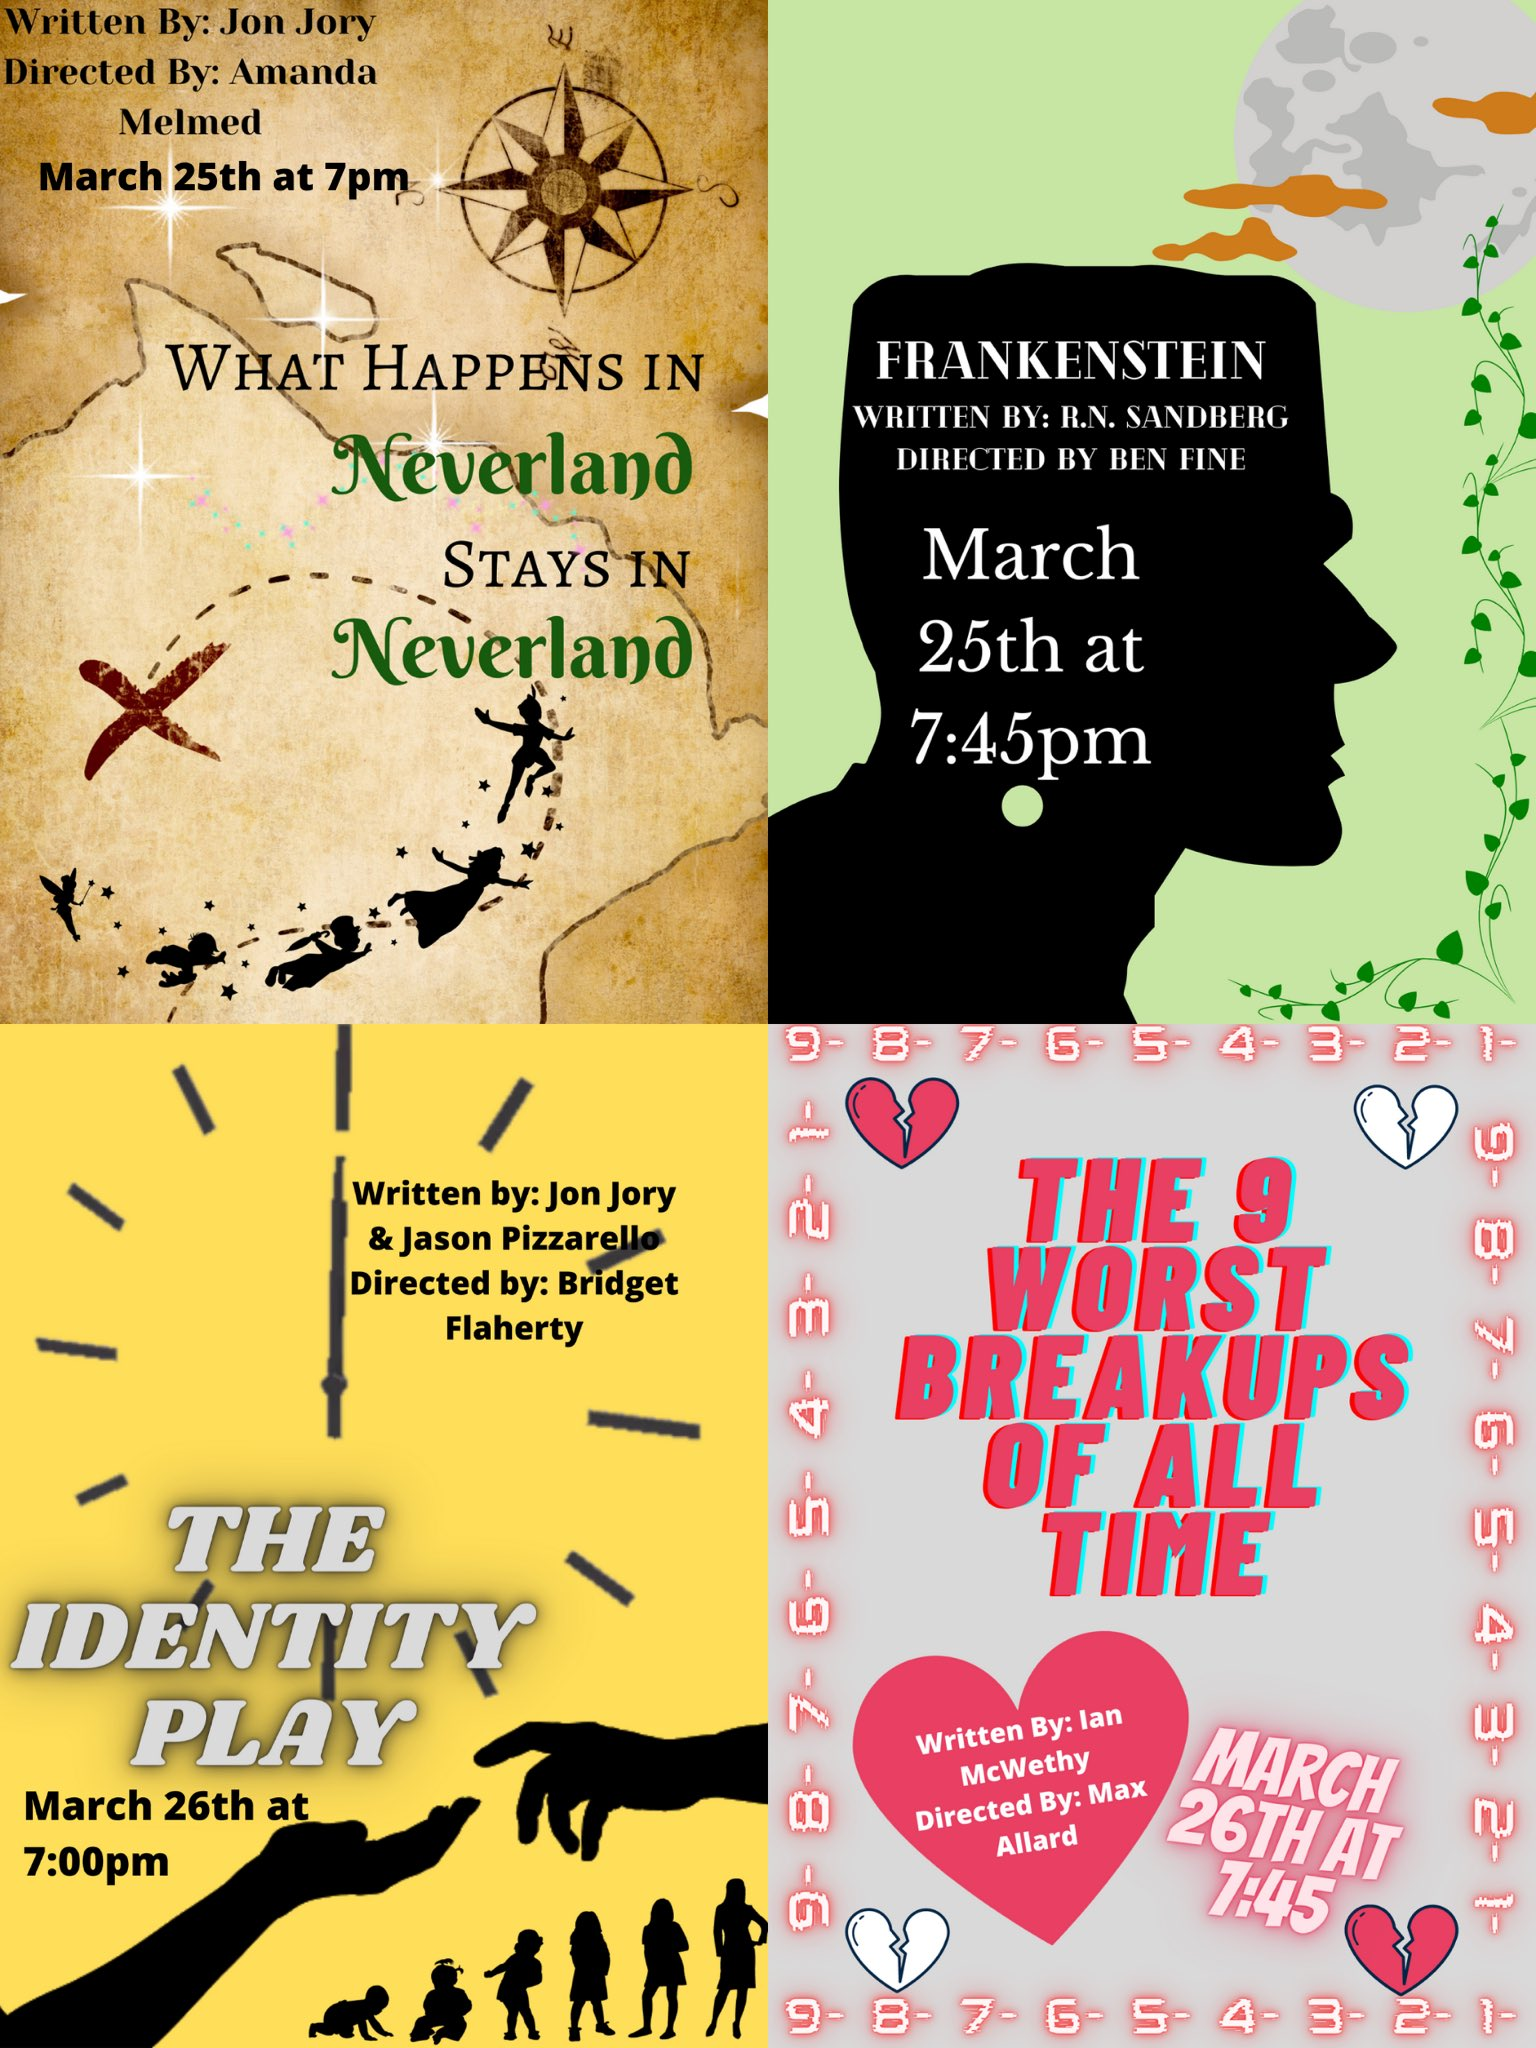 Hold the date for 1 Act Play Performances on 3/25 and 3/26